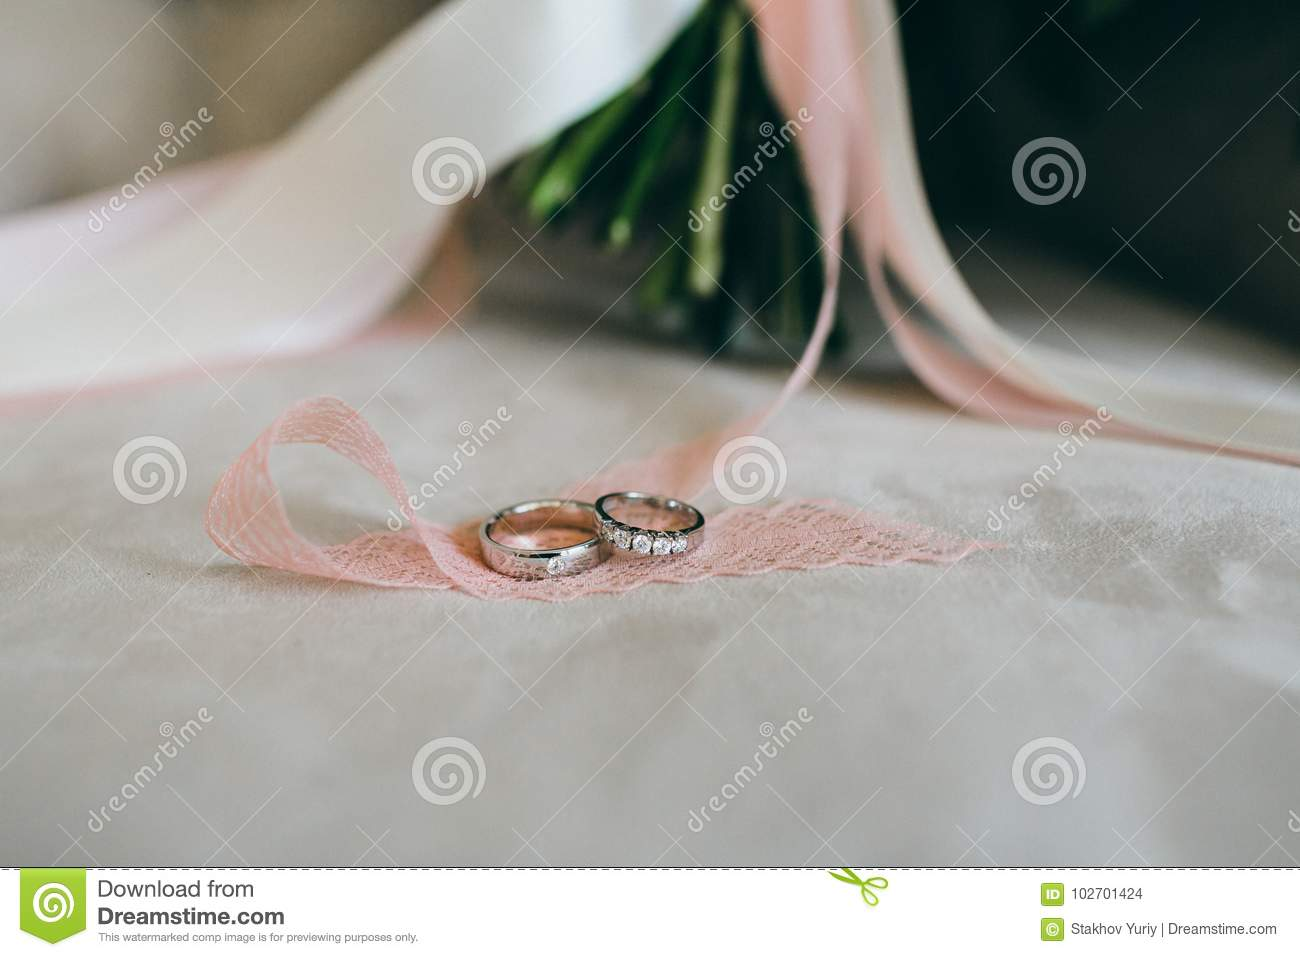 Silver wedding rings with gems on the piece of the ribbon. Close-up. Artwork